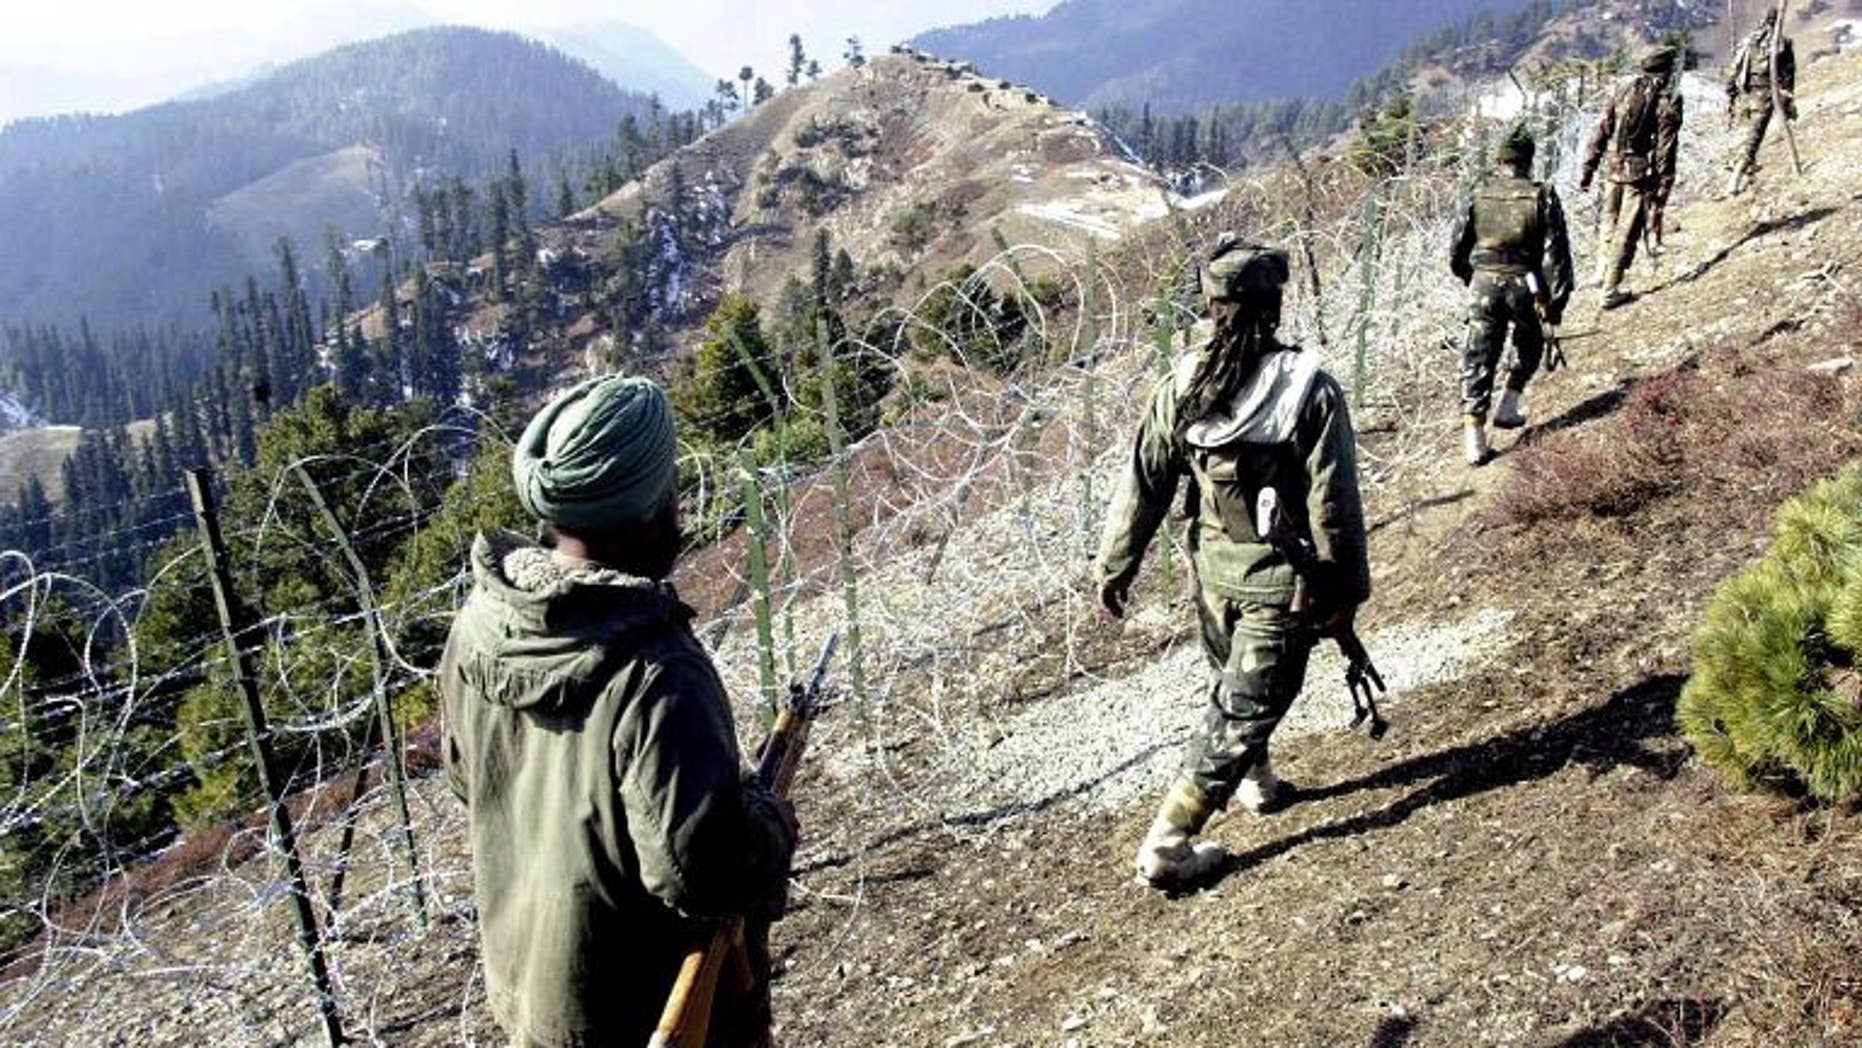 Indian soldiers on patrol along a barbed-wire fence in Baras, on December 4, 2003 -- near the Line of Control (LoC) that divides Kashmir